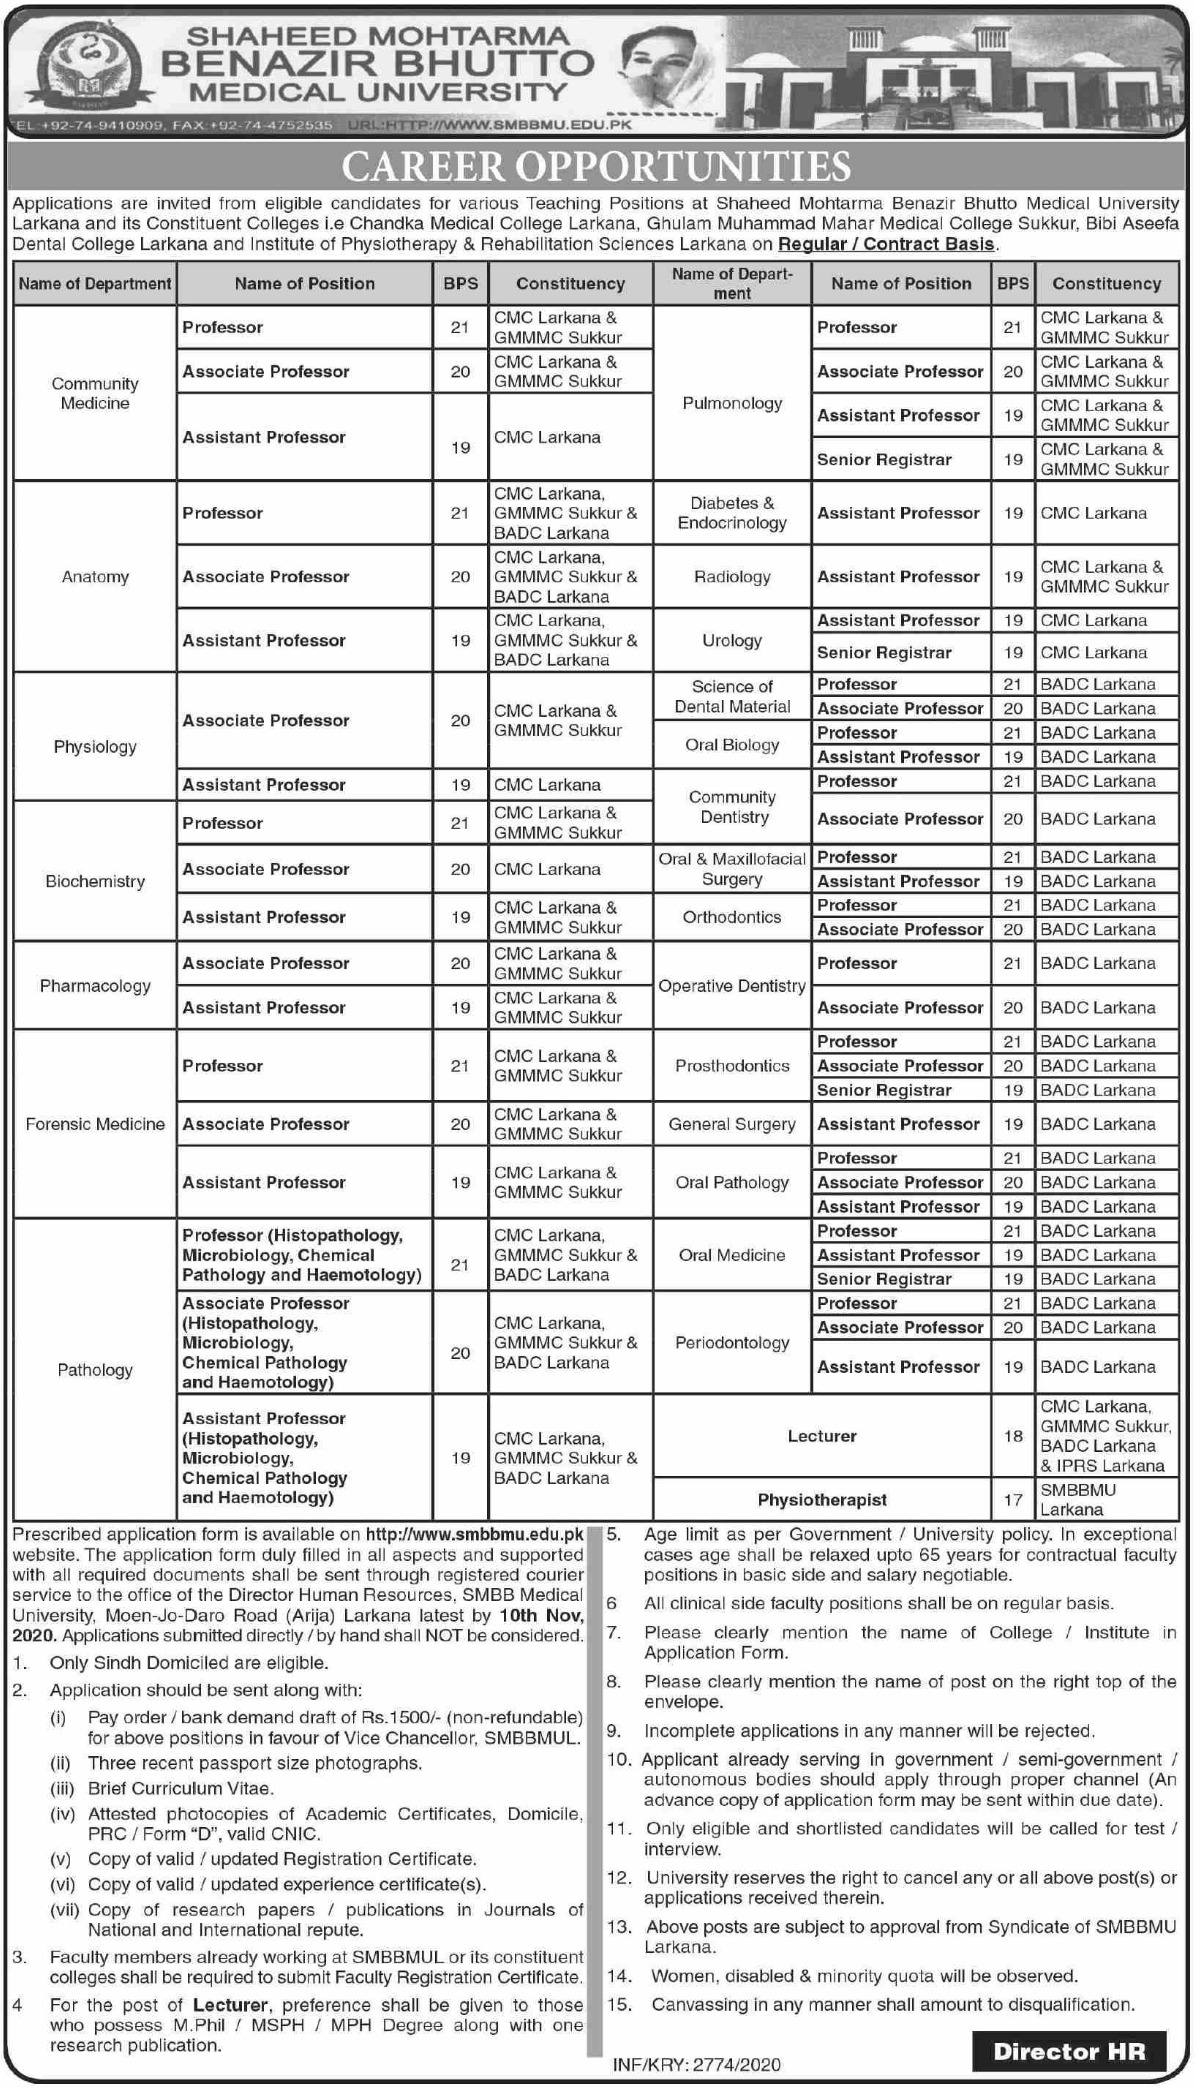 Shaheed Mohtarma Benazir Bhutto Medical University SMBBMU Larkana Jobs October 2020